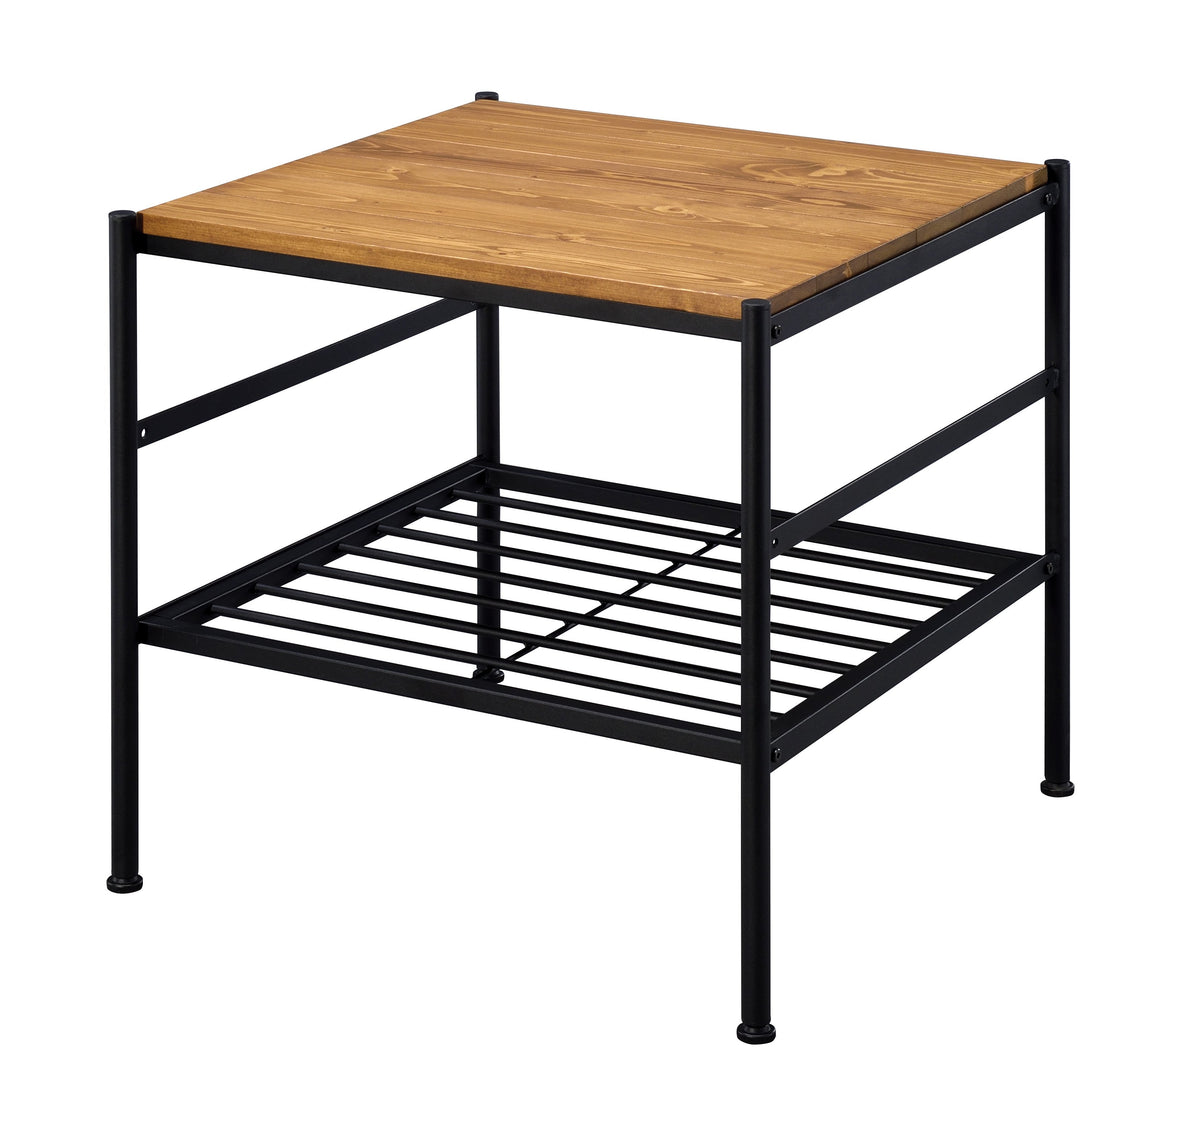 Picture of: Benjara Metal And Wooden End Table With Slatted Bottom Shelf Brown And Black Bm204496 Benzara Com